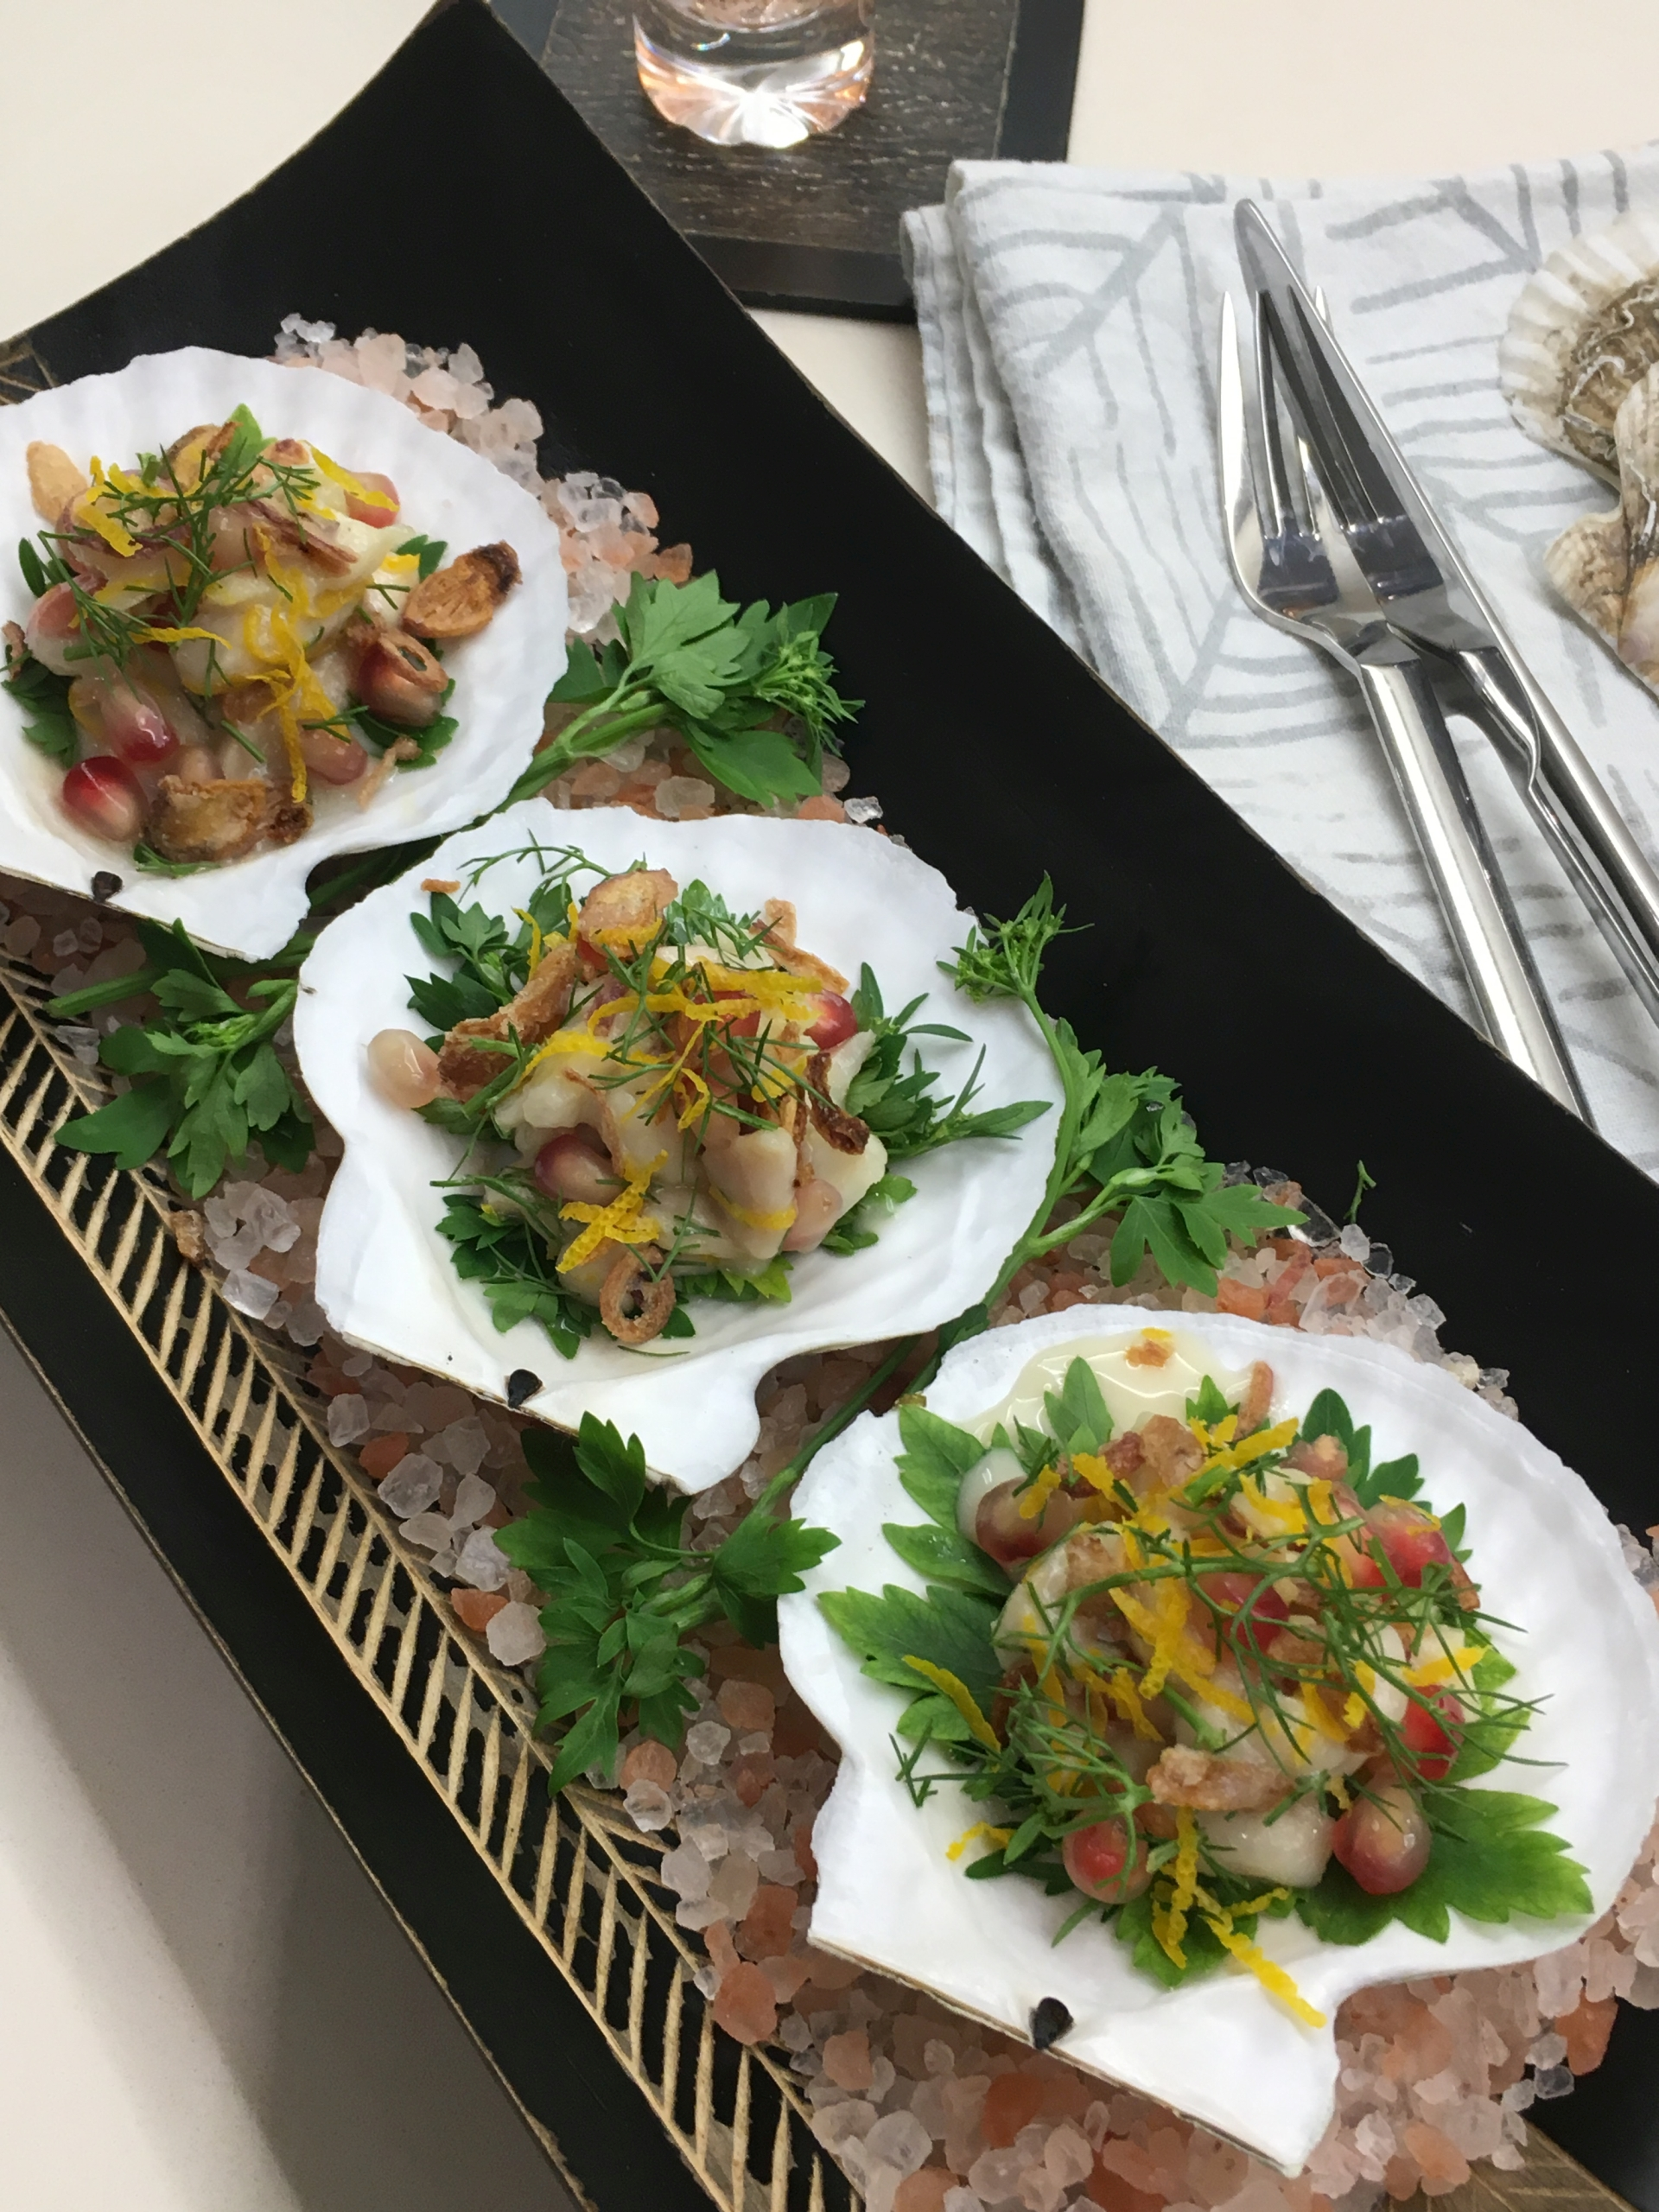 This dish combines juicy Australian scallops with some Vietnemese flavours and textures.